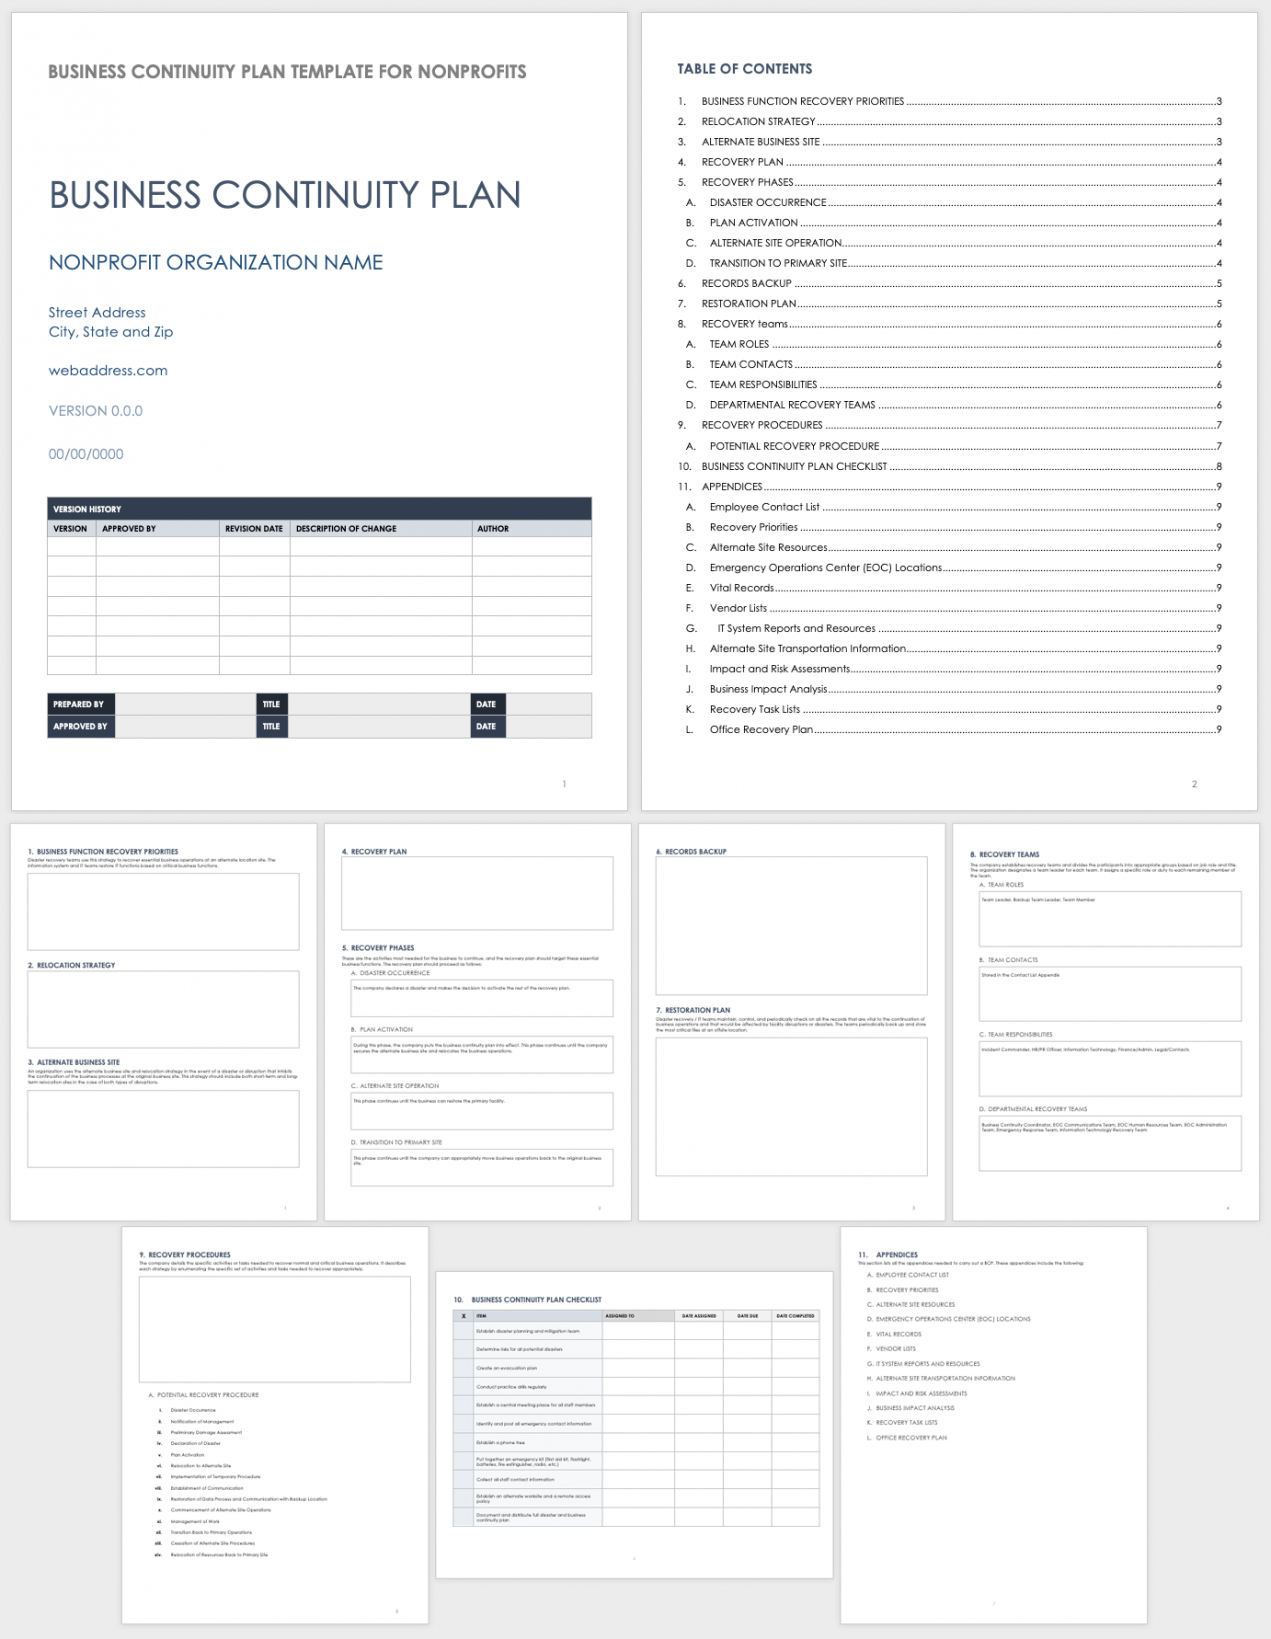 sample free business continuity plan templates  smartsheet law firm business continuity plan template excel